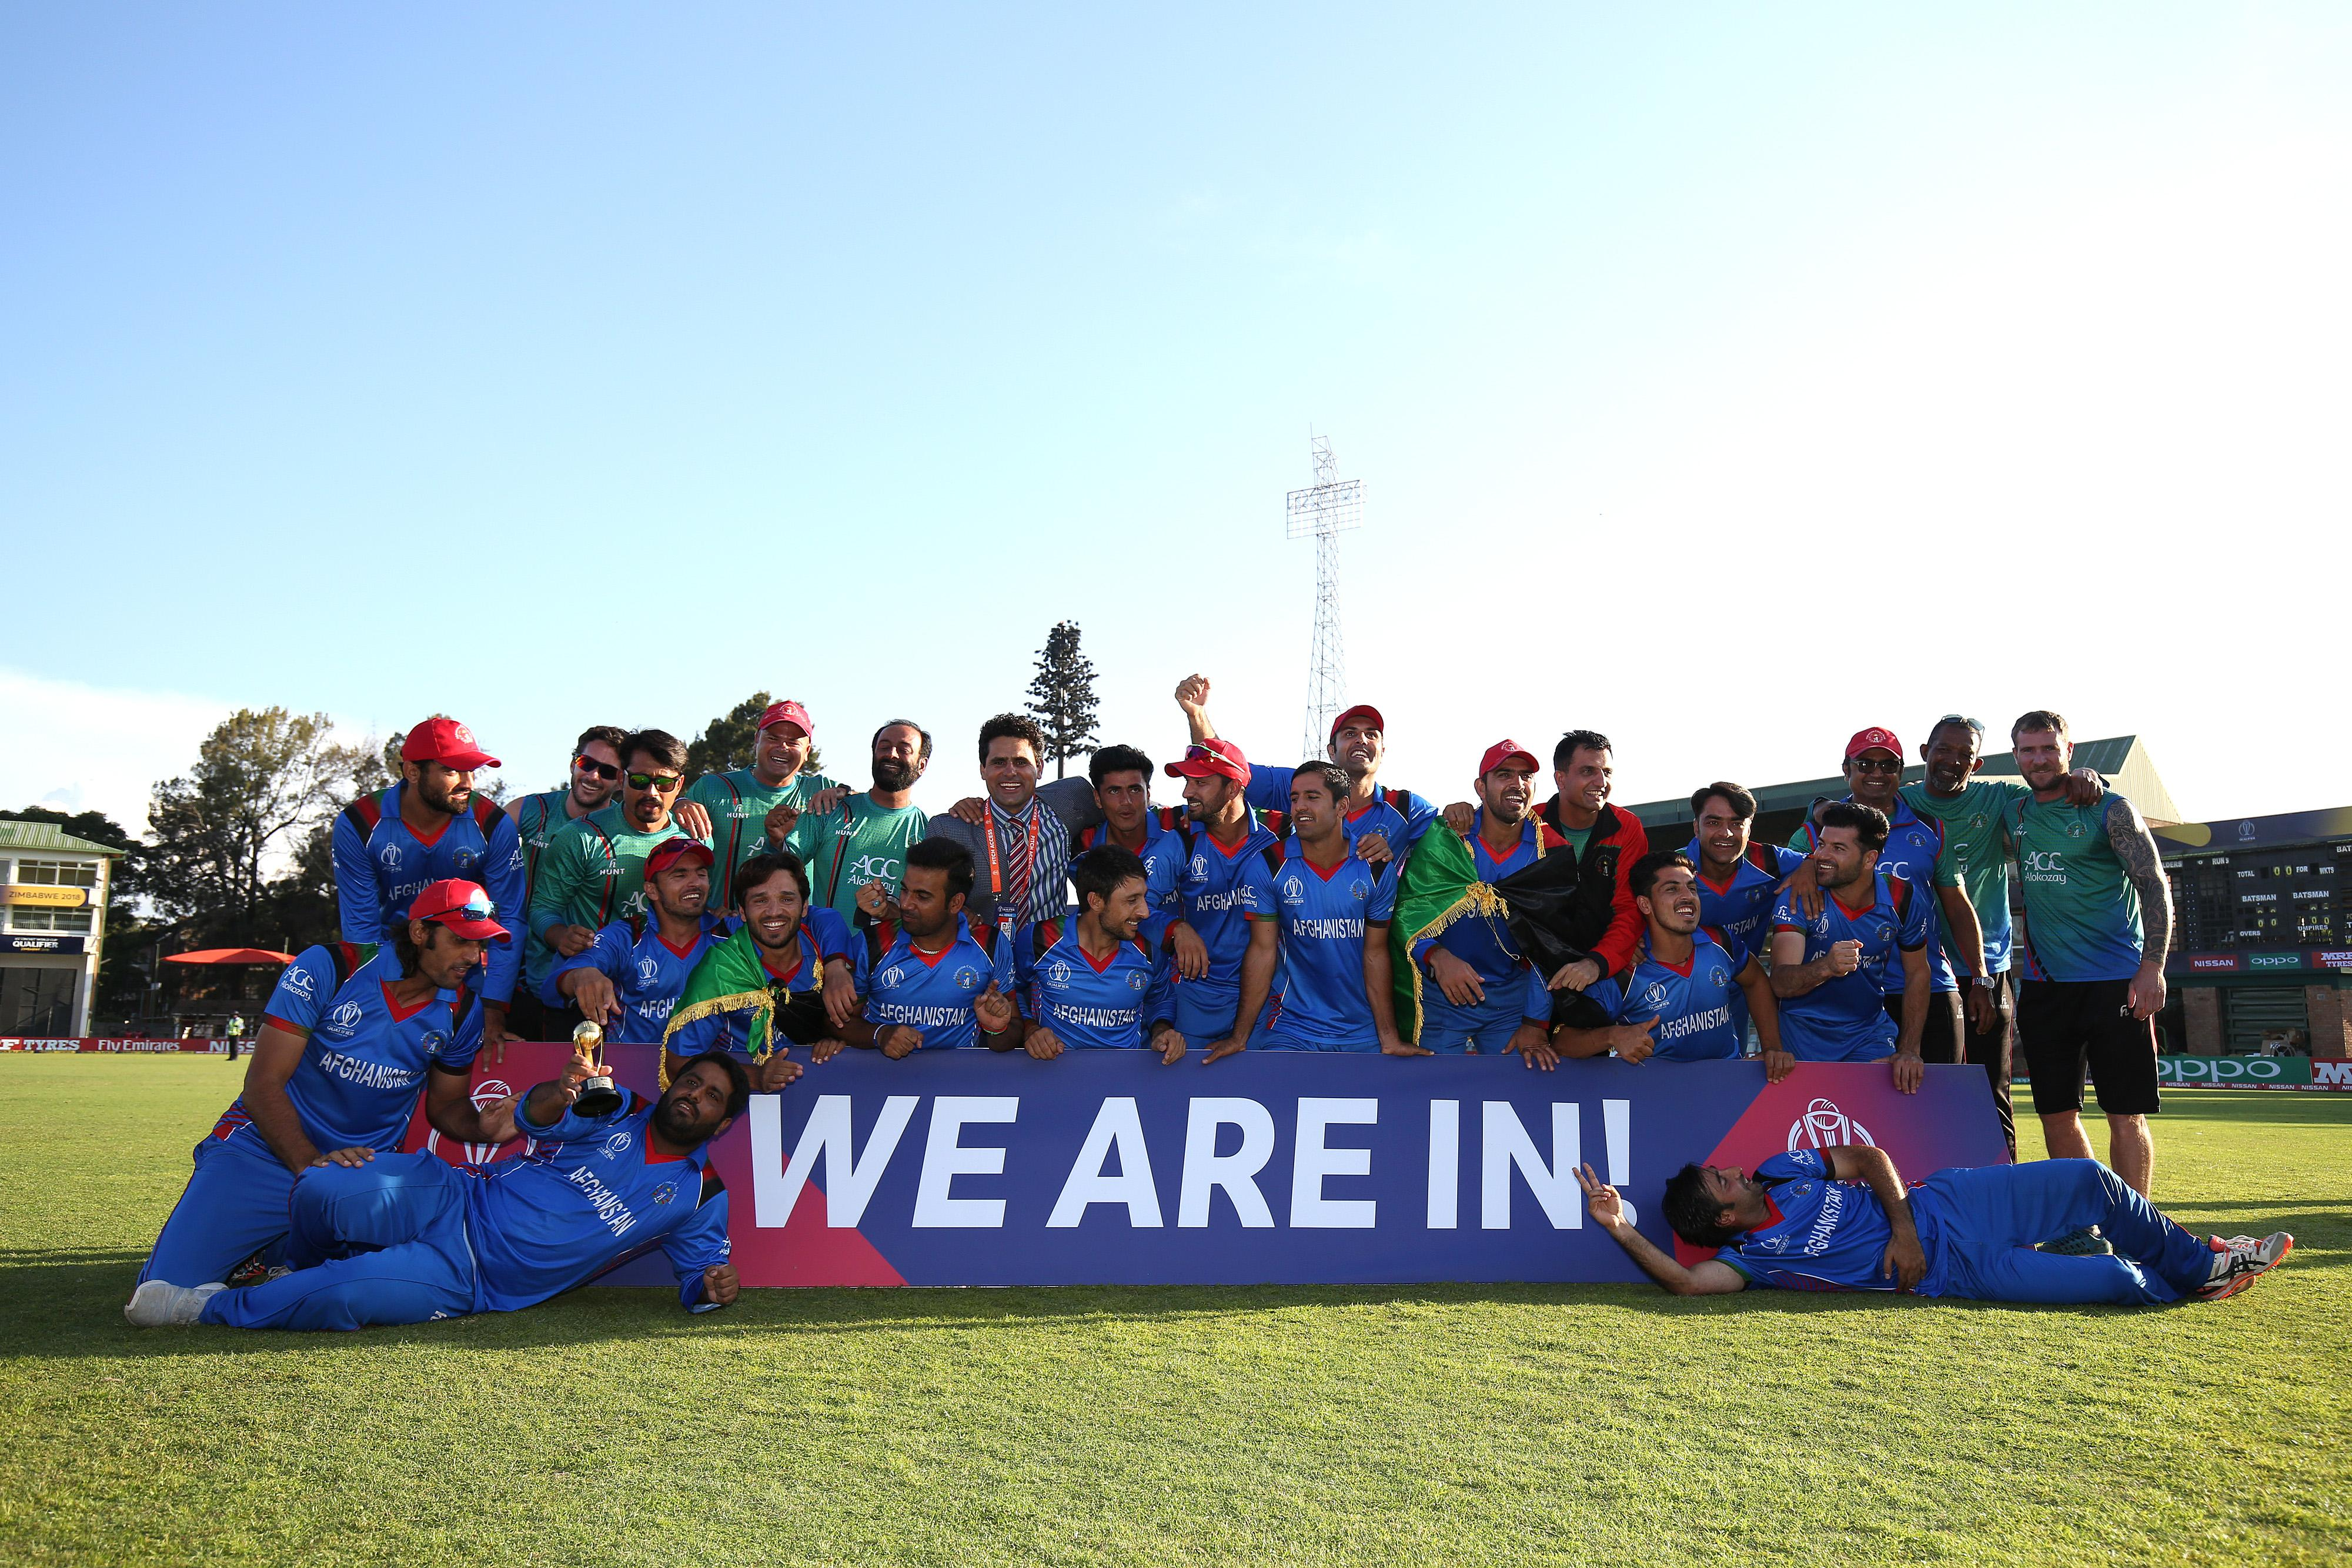 Afghanistan will travel to England and Wales for the 2019 World Cup